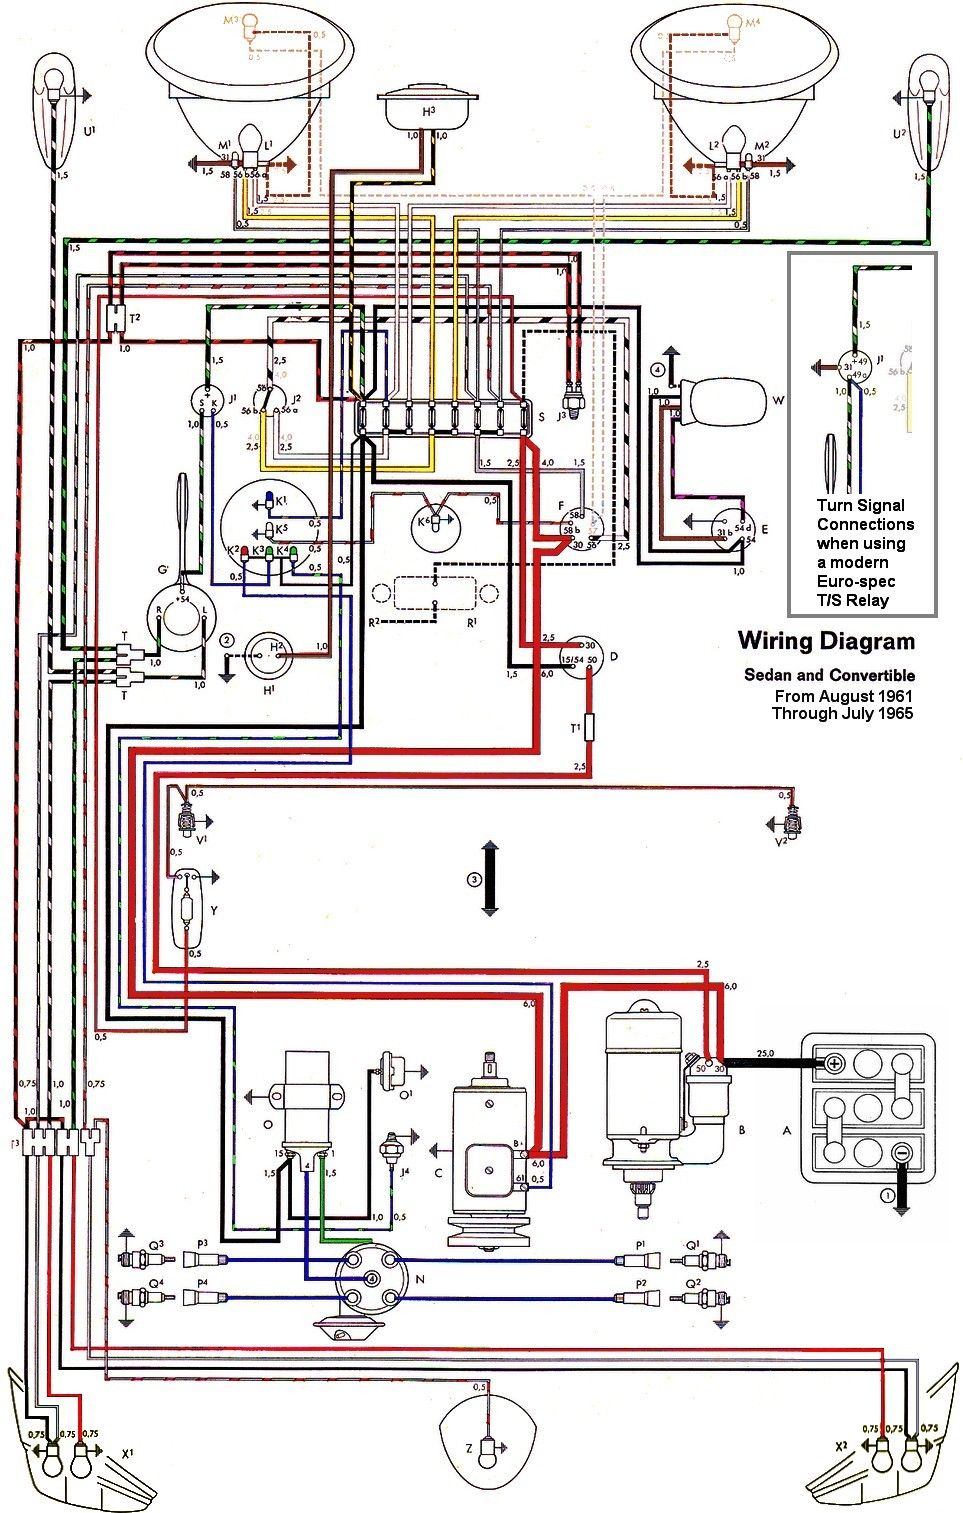 Vw Wiring Harness Diagram Guide And Troubleshooting Of Diagrams For 2006 Jetta Door Beetle Schematics Rh Ksefanzone Com